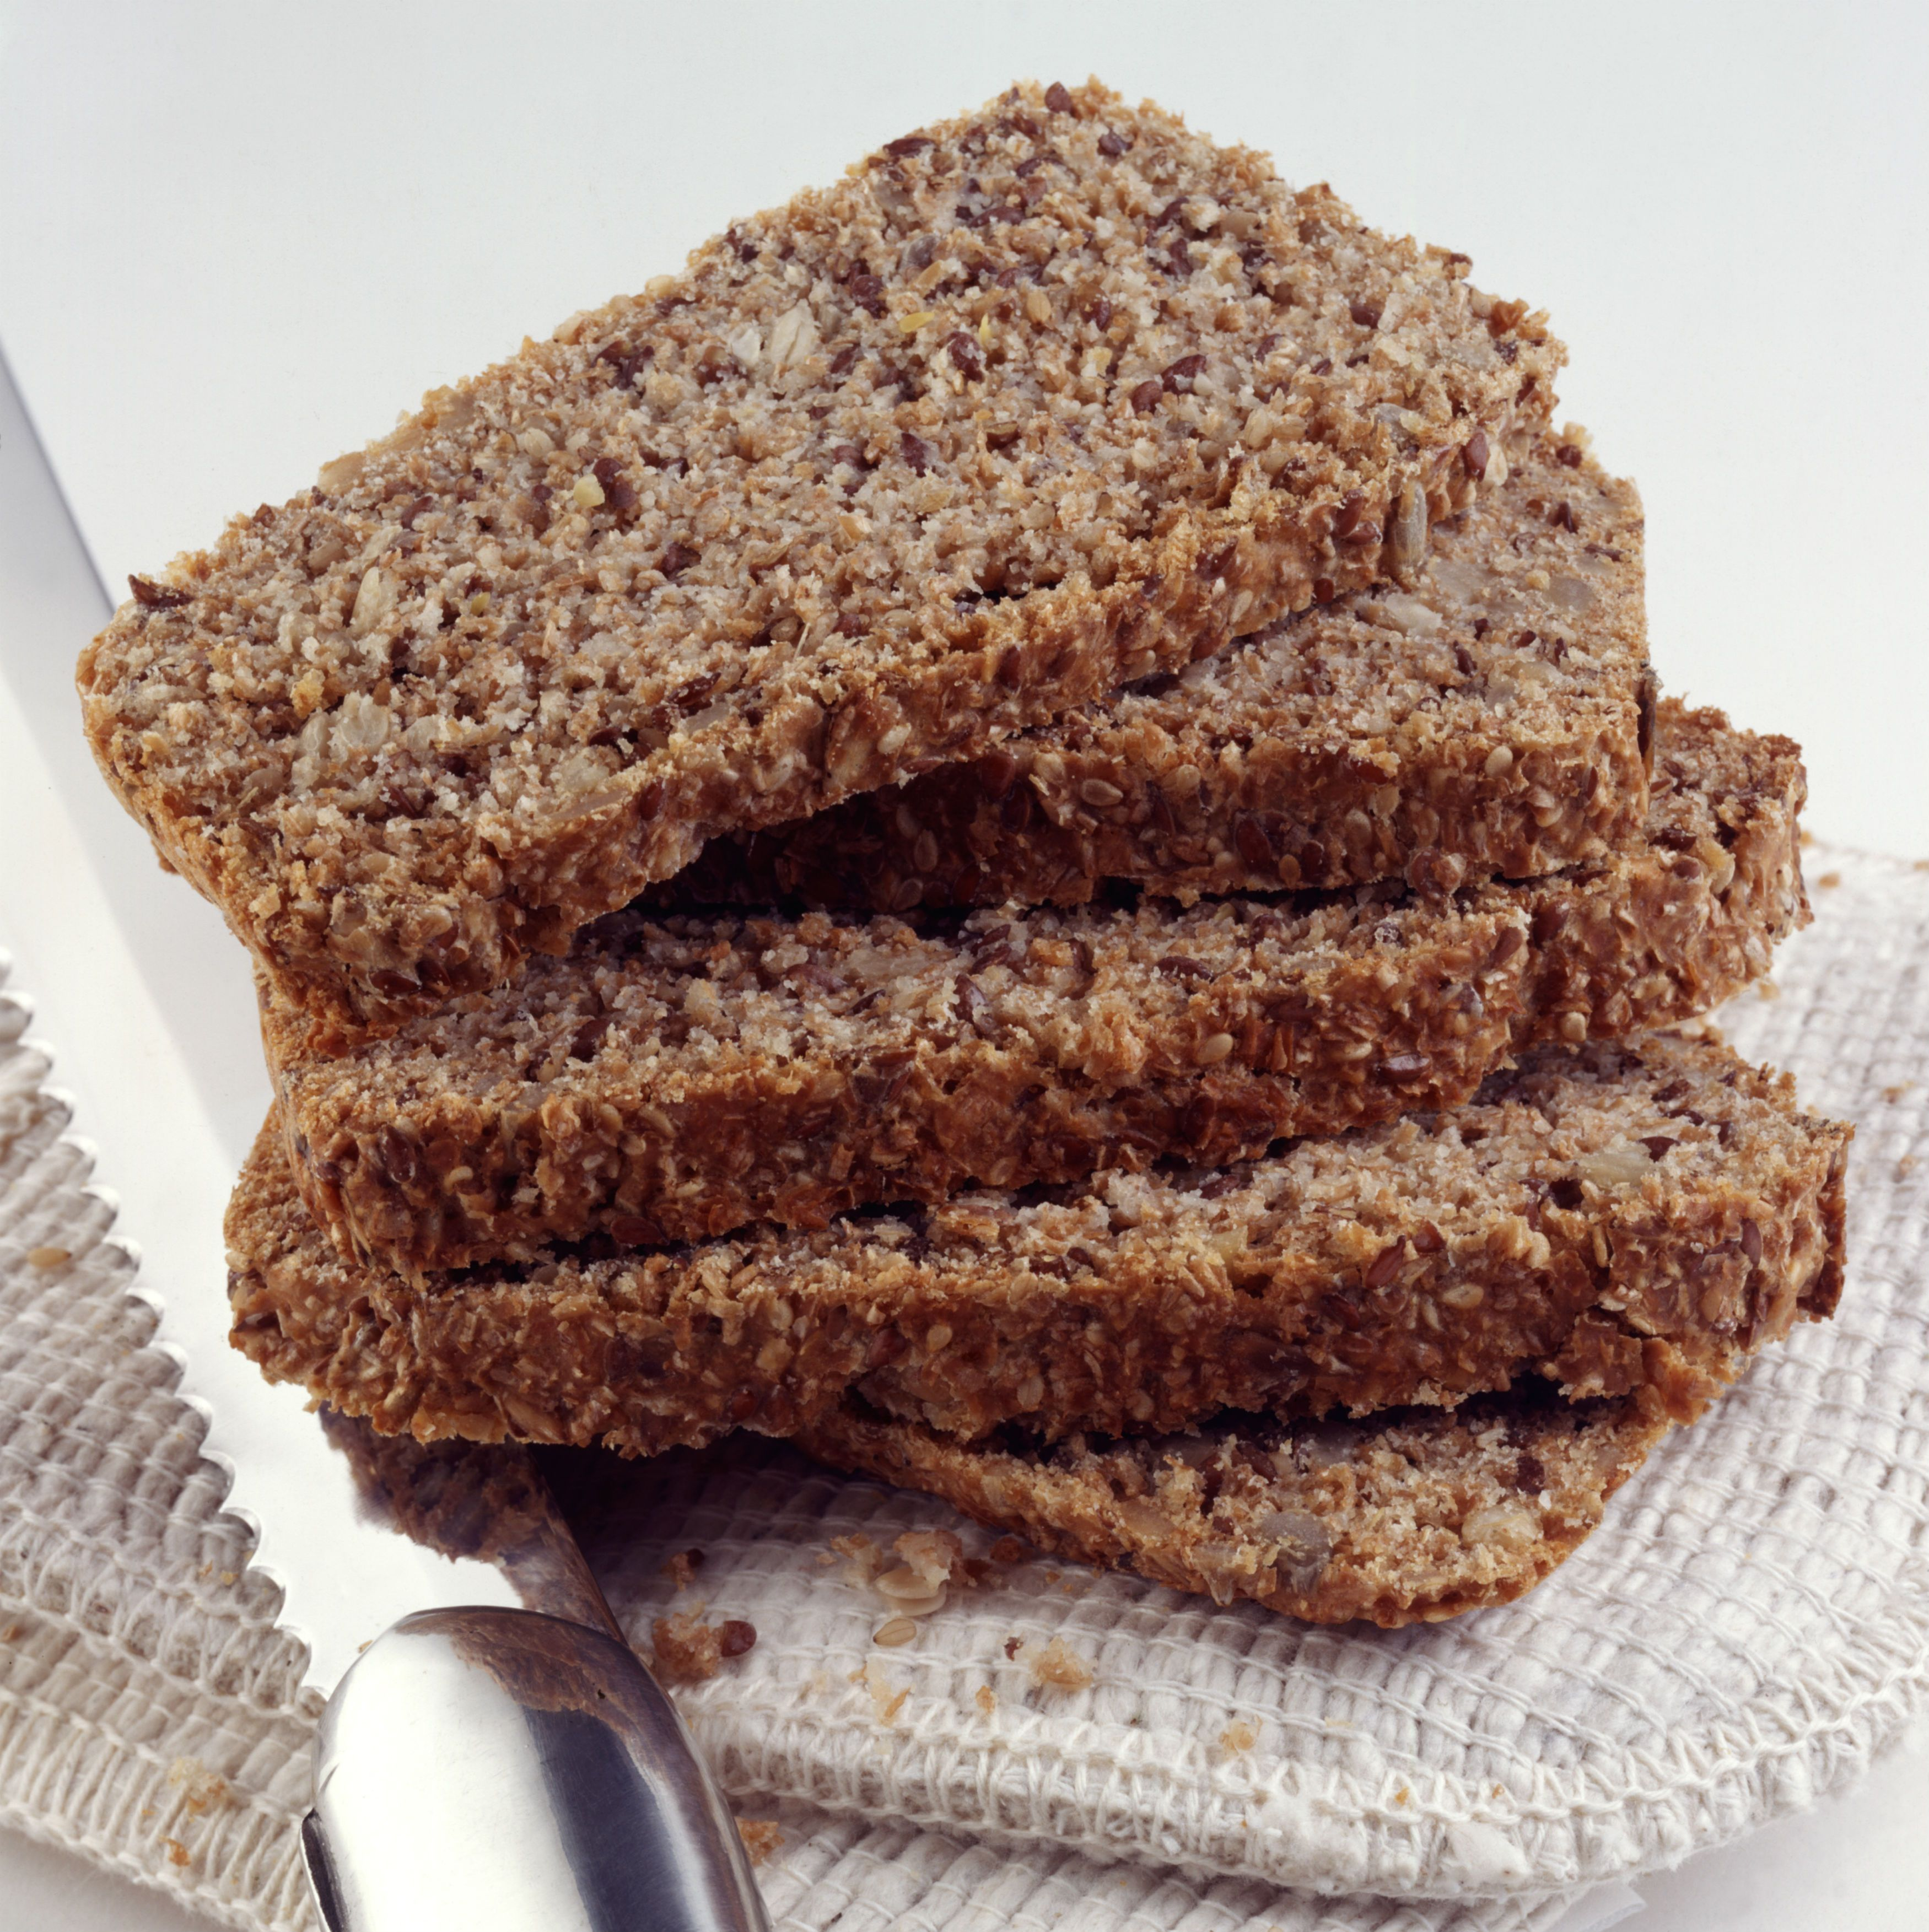 Discussion on this topic: Focaccia-Style Flax Bread Recipe, focaccia-style-flax-bread-recipe/